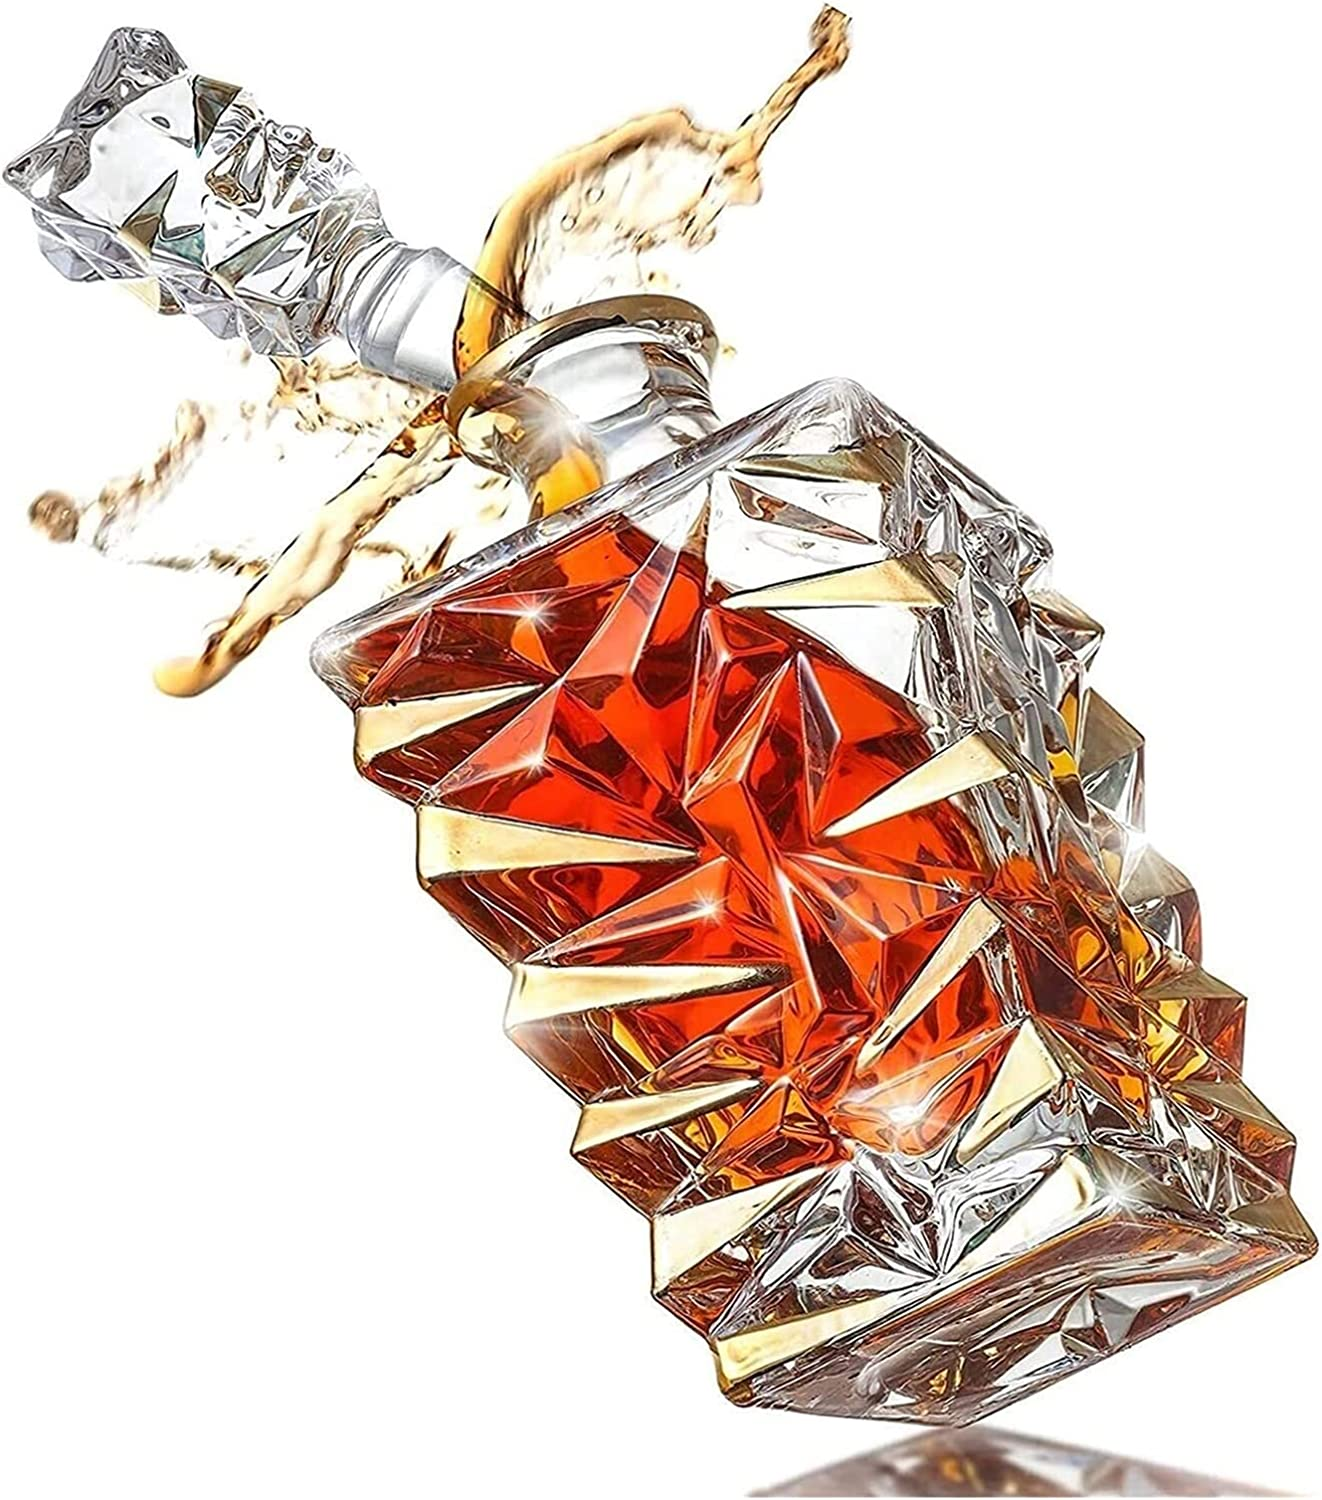 Decanter set Whiskey 850 Ml Carafes ! Super beauty product restock quality top! Liqu Max 67% OFF Whisky Crystal